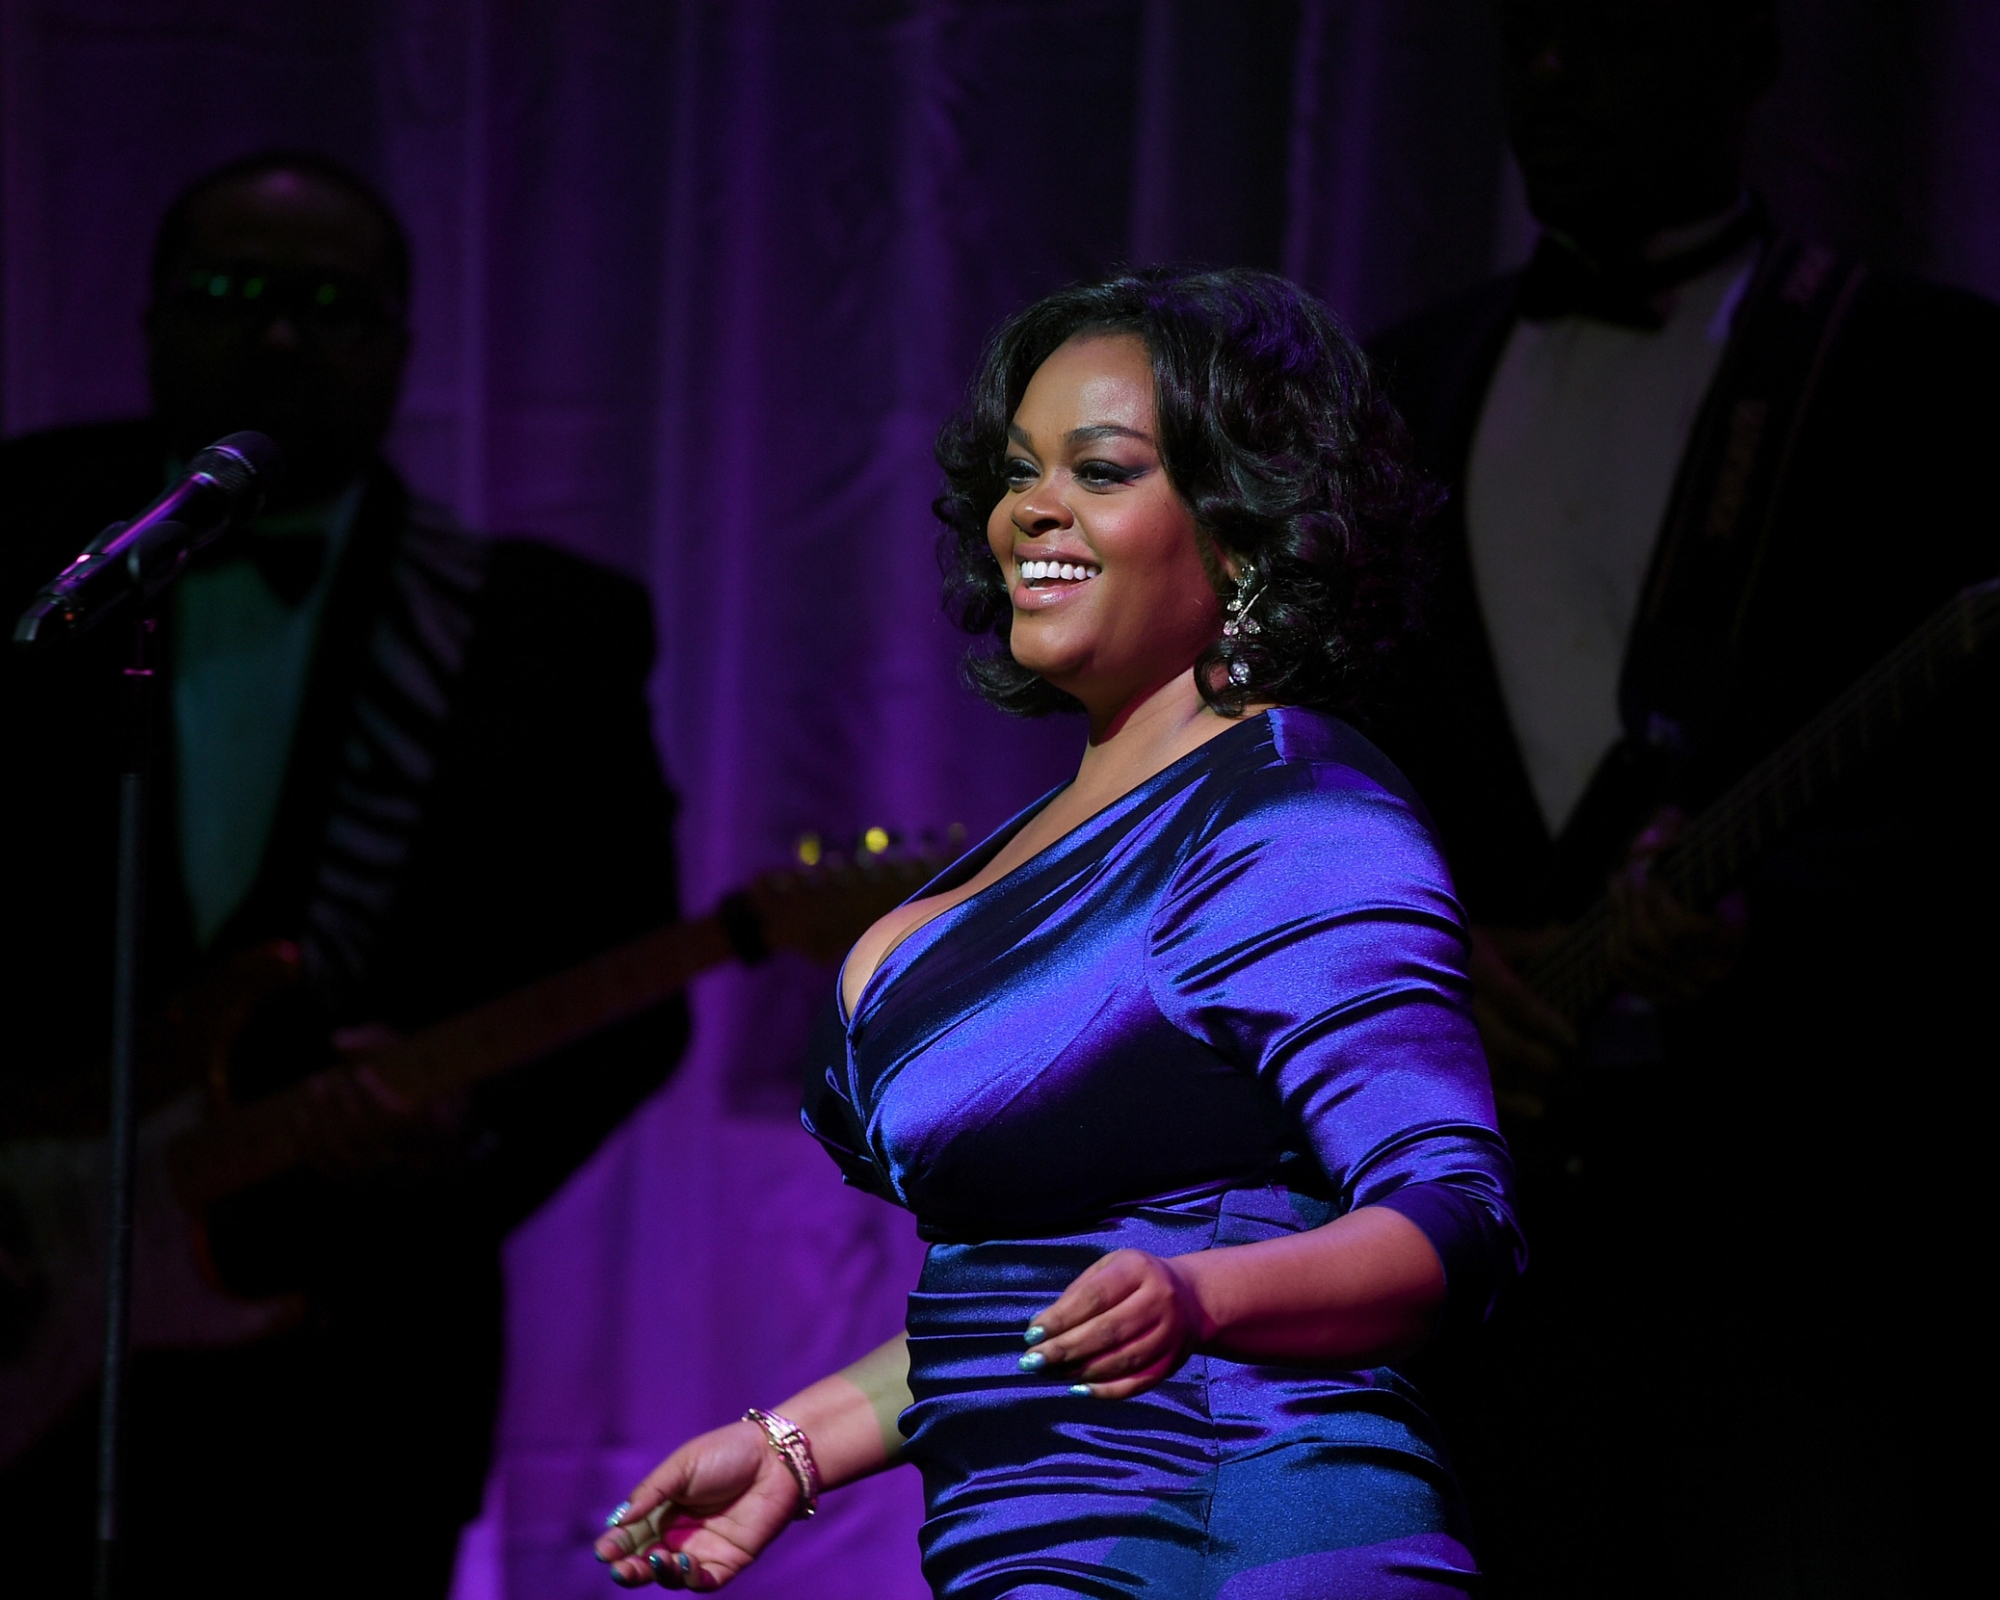 Jill Scott performs at the 2014 UNICEF Snowflake Ball ©2014 Bryan Bedder/Getty Images for UNICEF